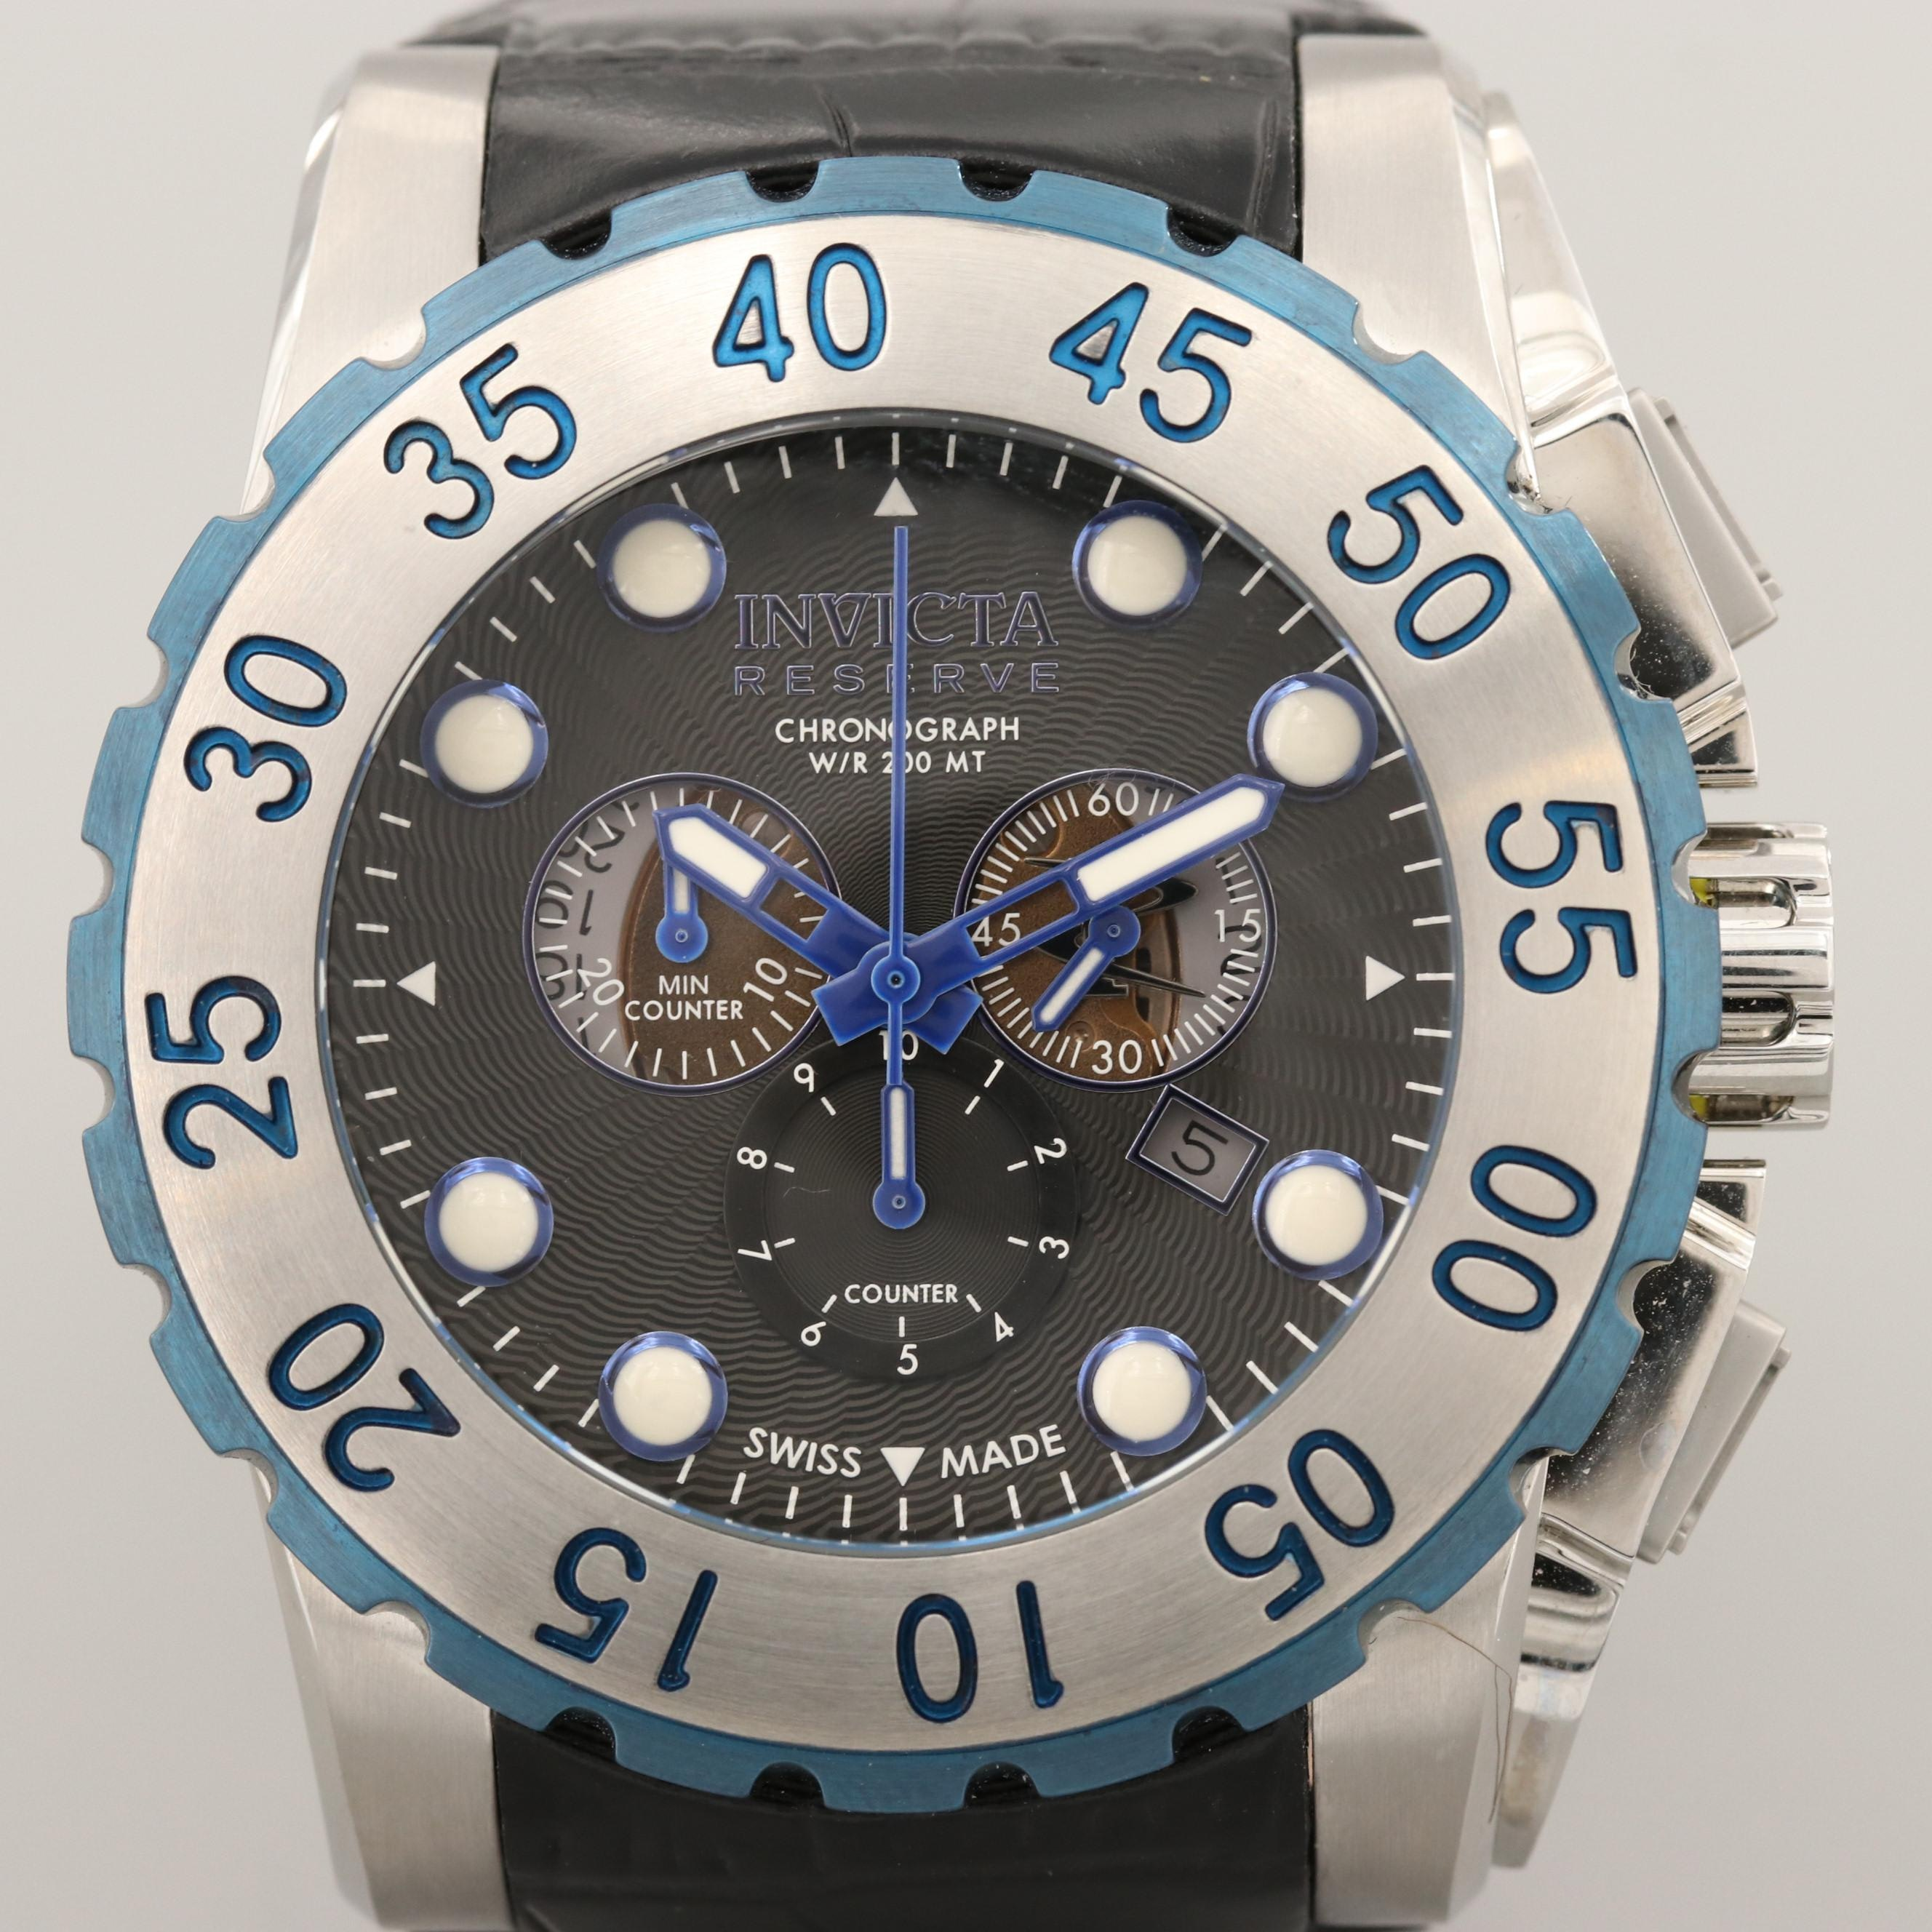 Invicta Reserve Stainless Steel Wristwatch